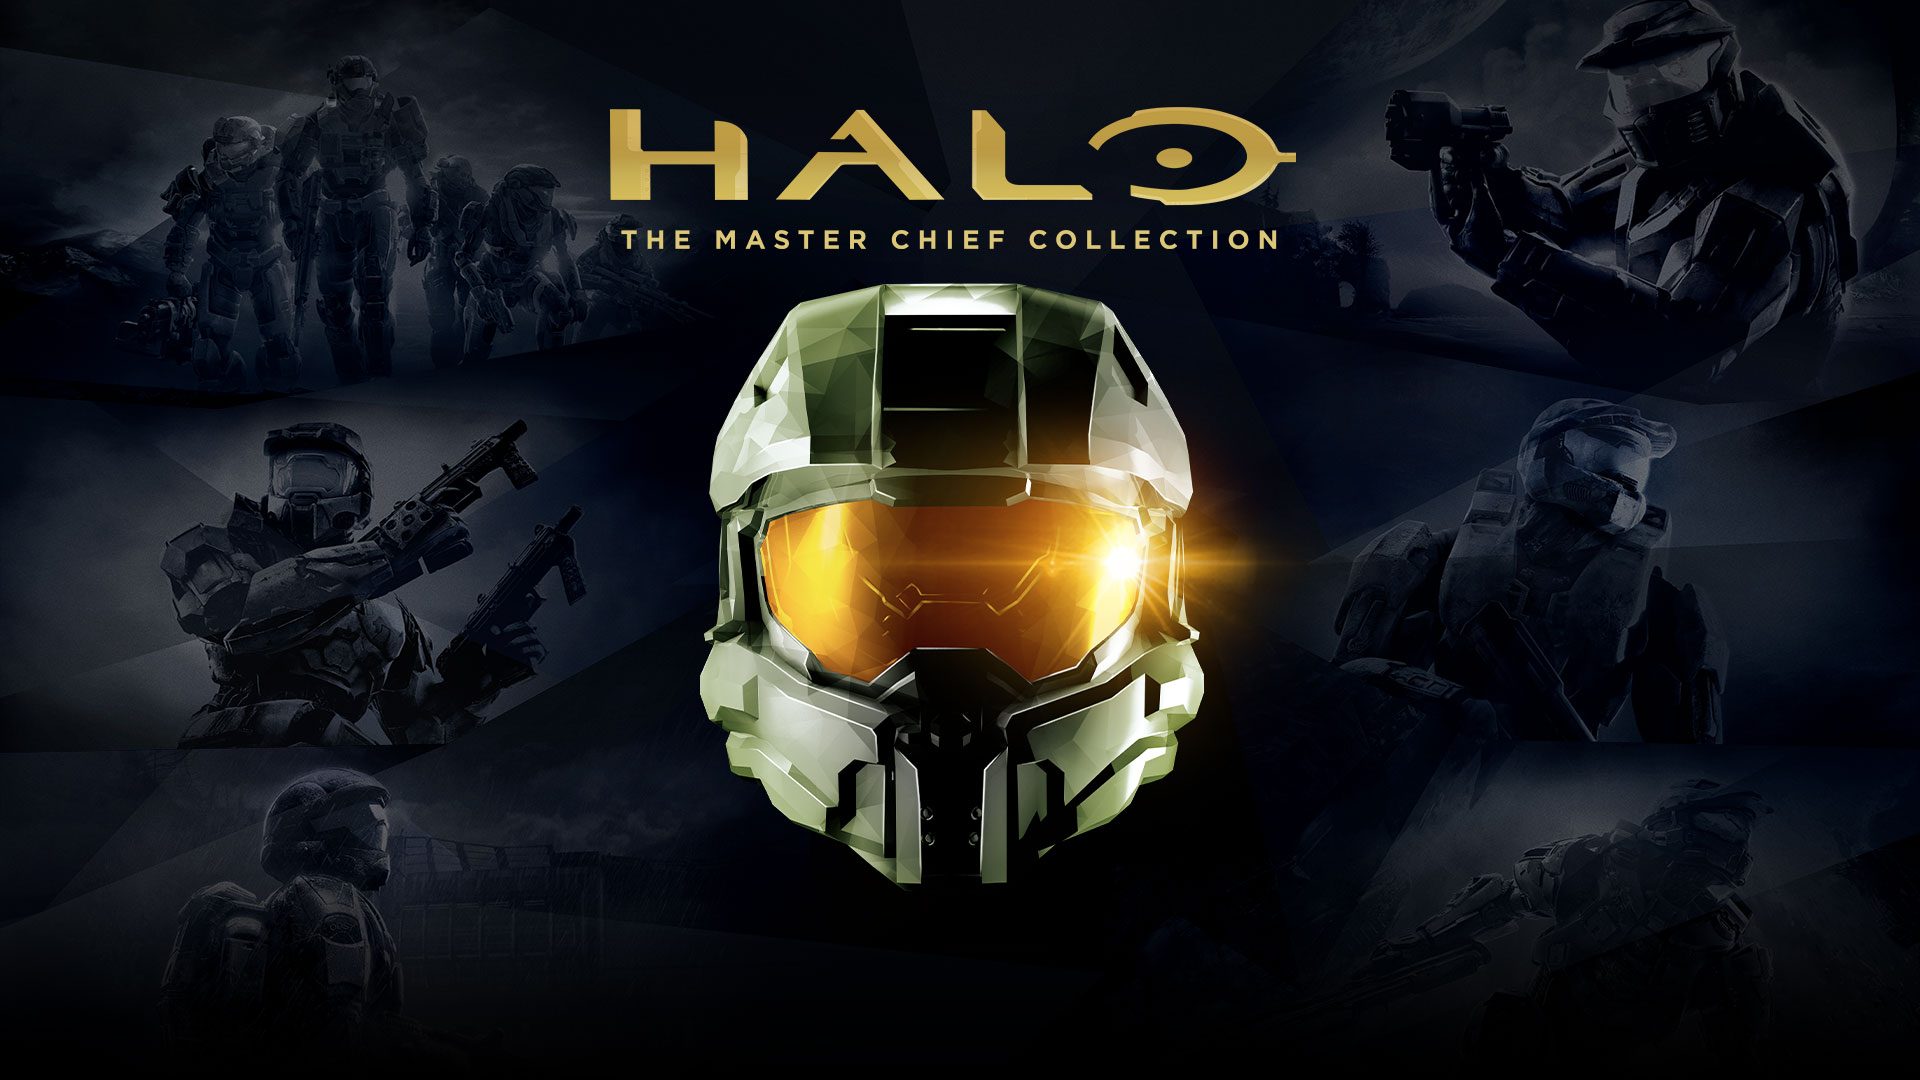 Halo: The Master Chief Collection, vista frontale del casco di Master Chief e sullo sfondo la grafica precedente di Halo